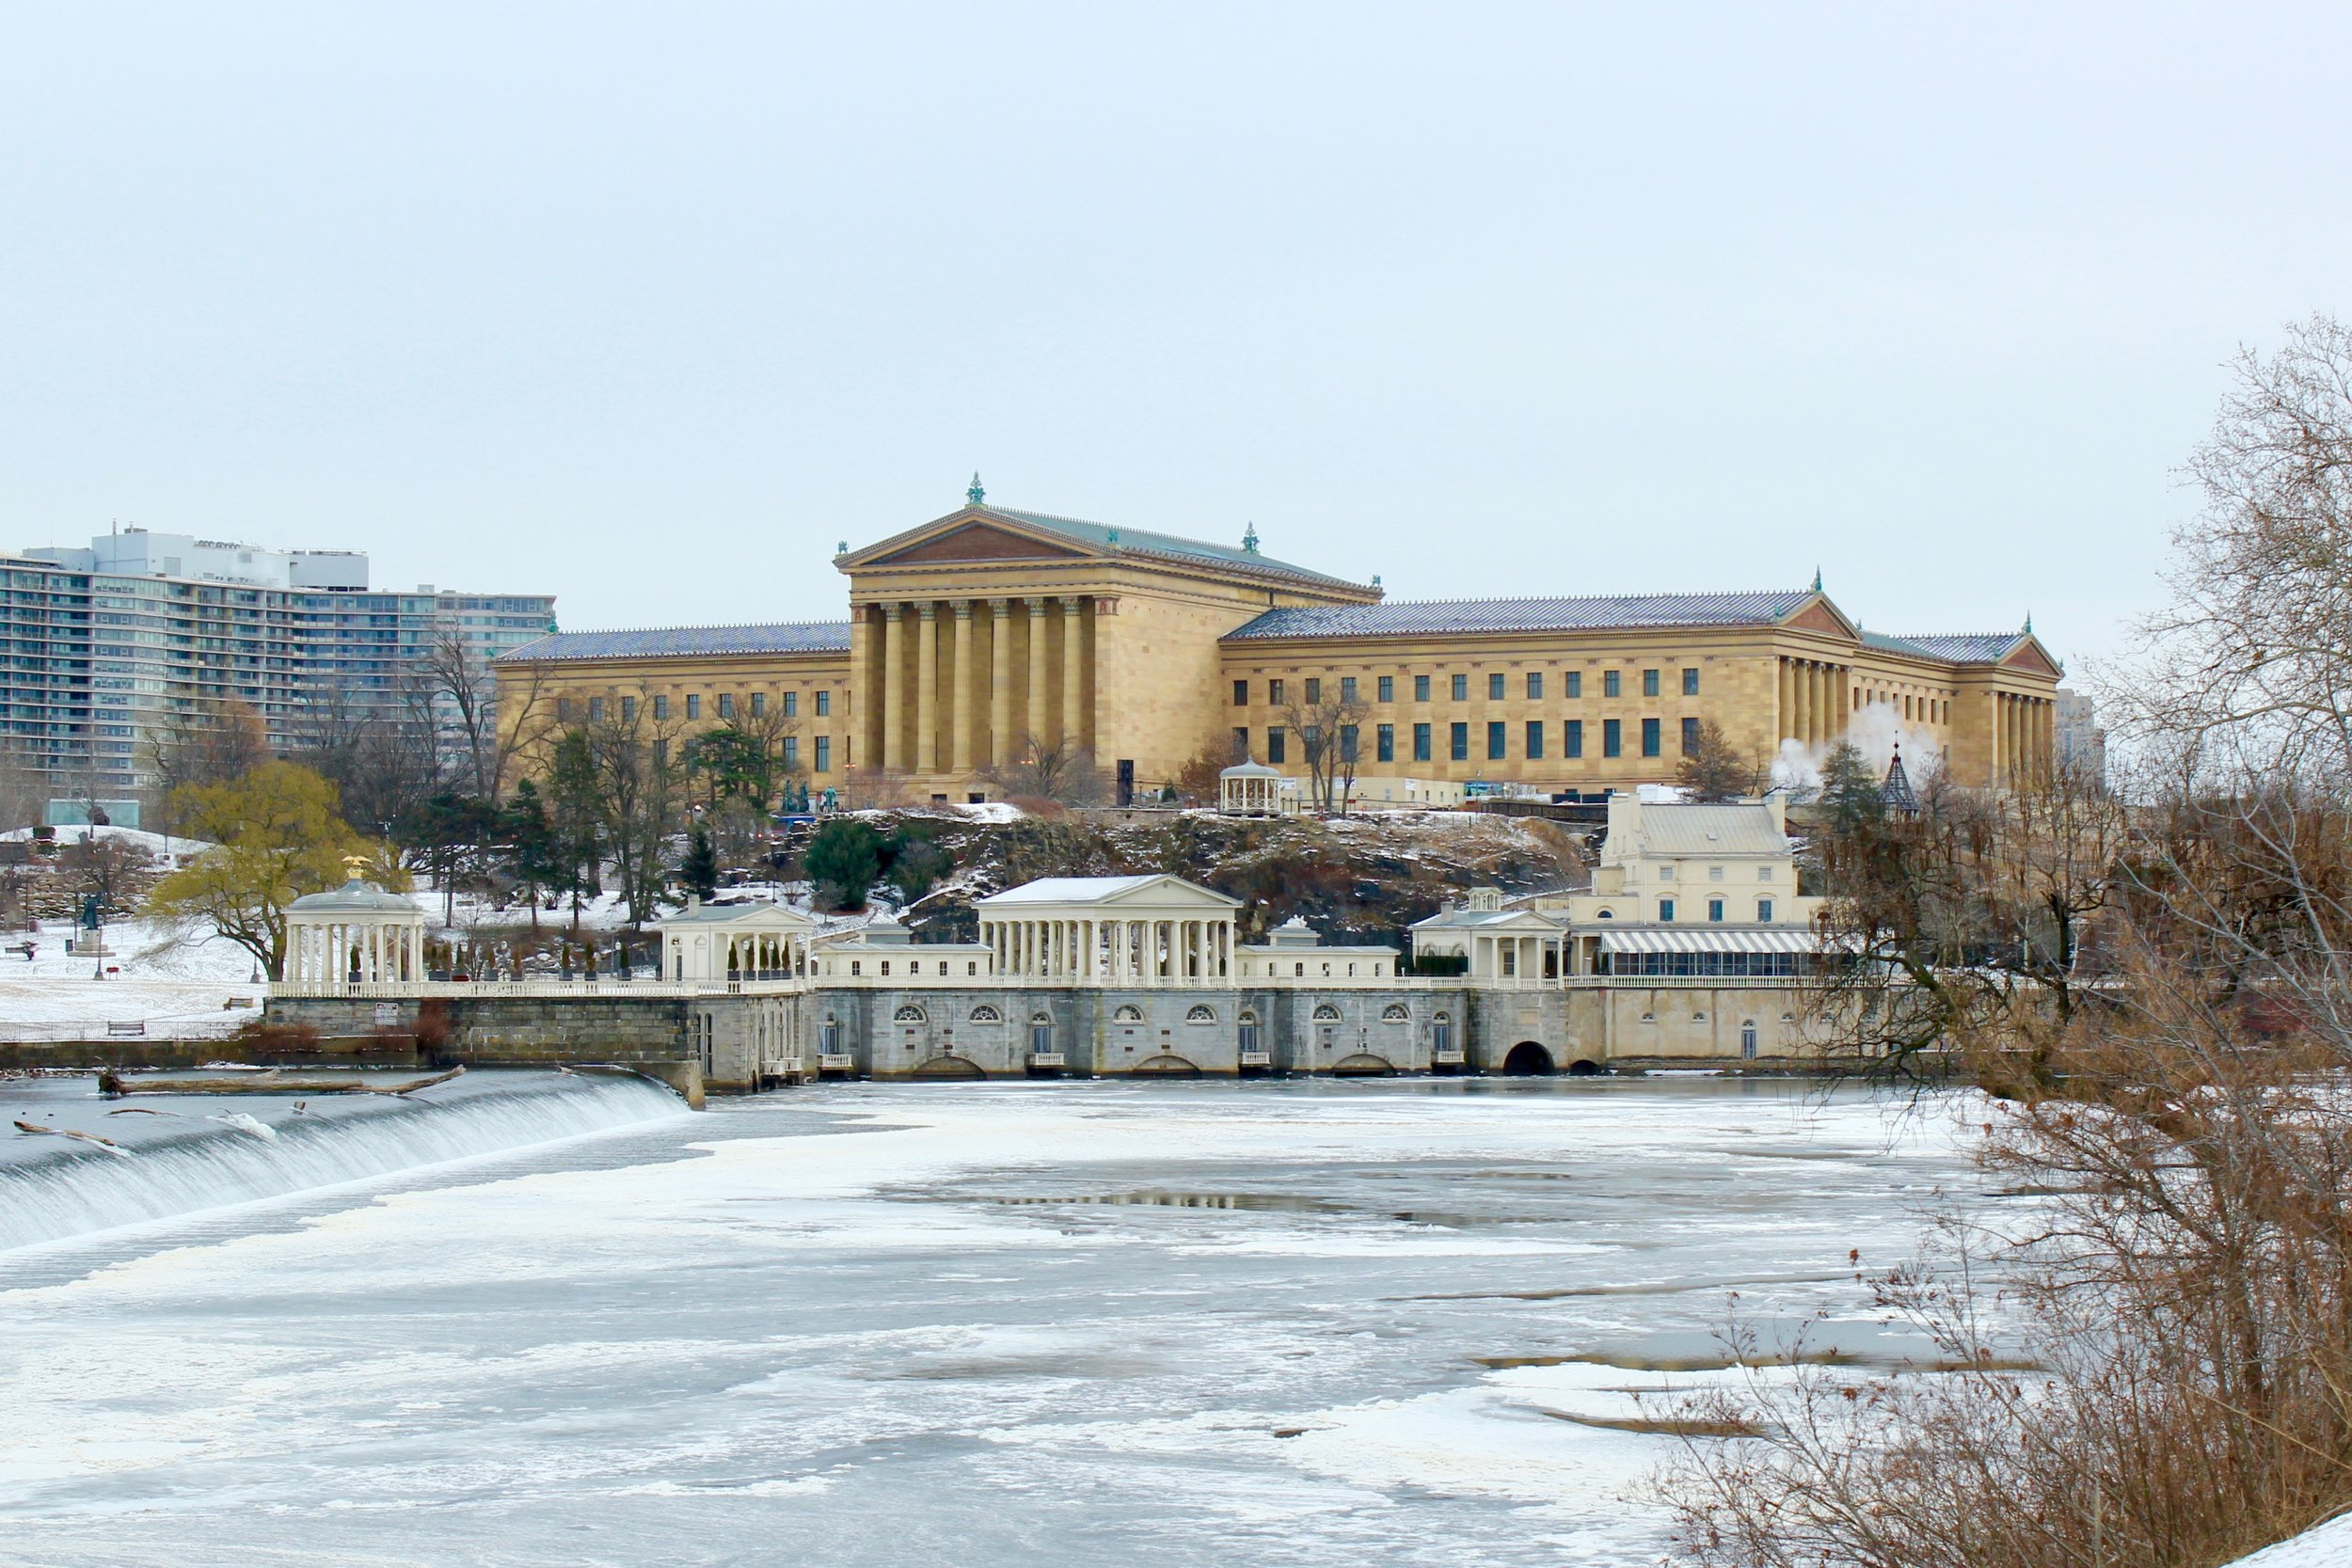 We weren't allowed to take pictures at the plant for security reasons, so here's a photo of the Water Works on a very cold day. This used to be where Philly pumped drinking water from the Schuylkill River.